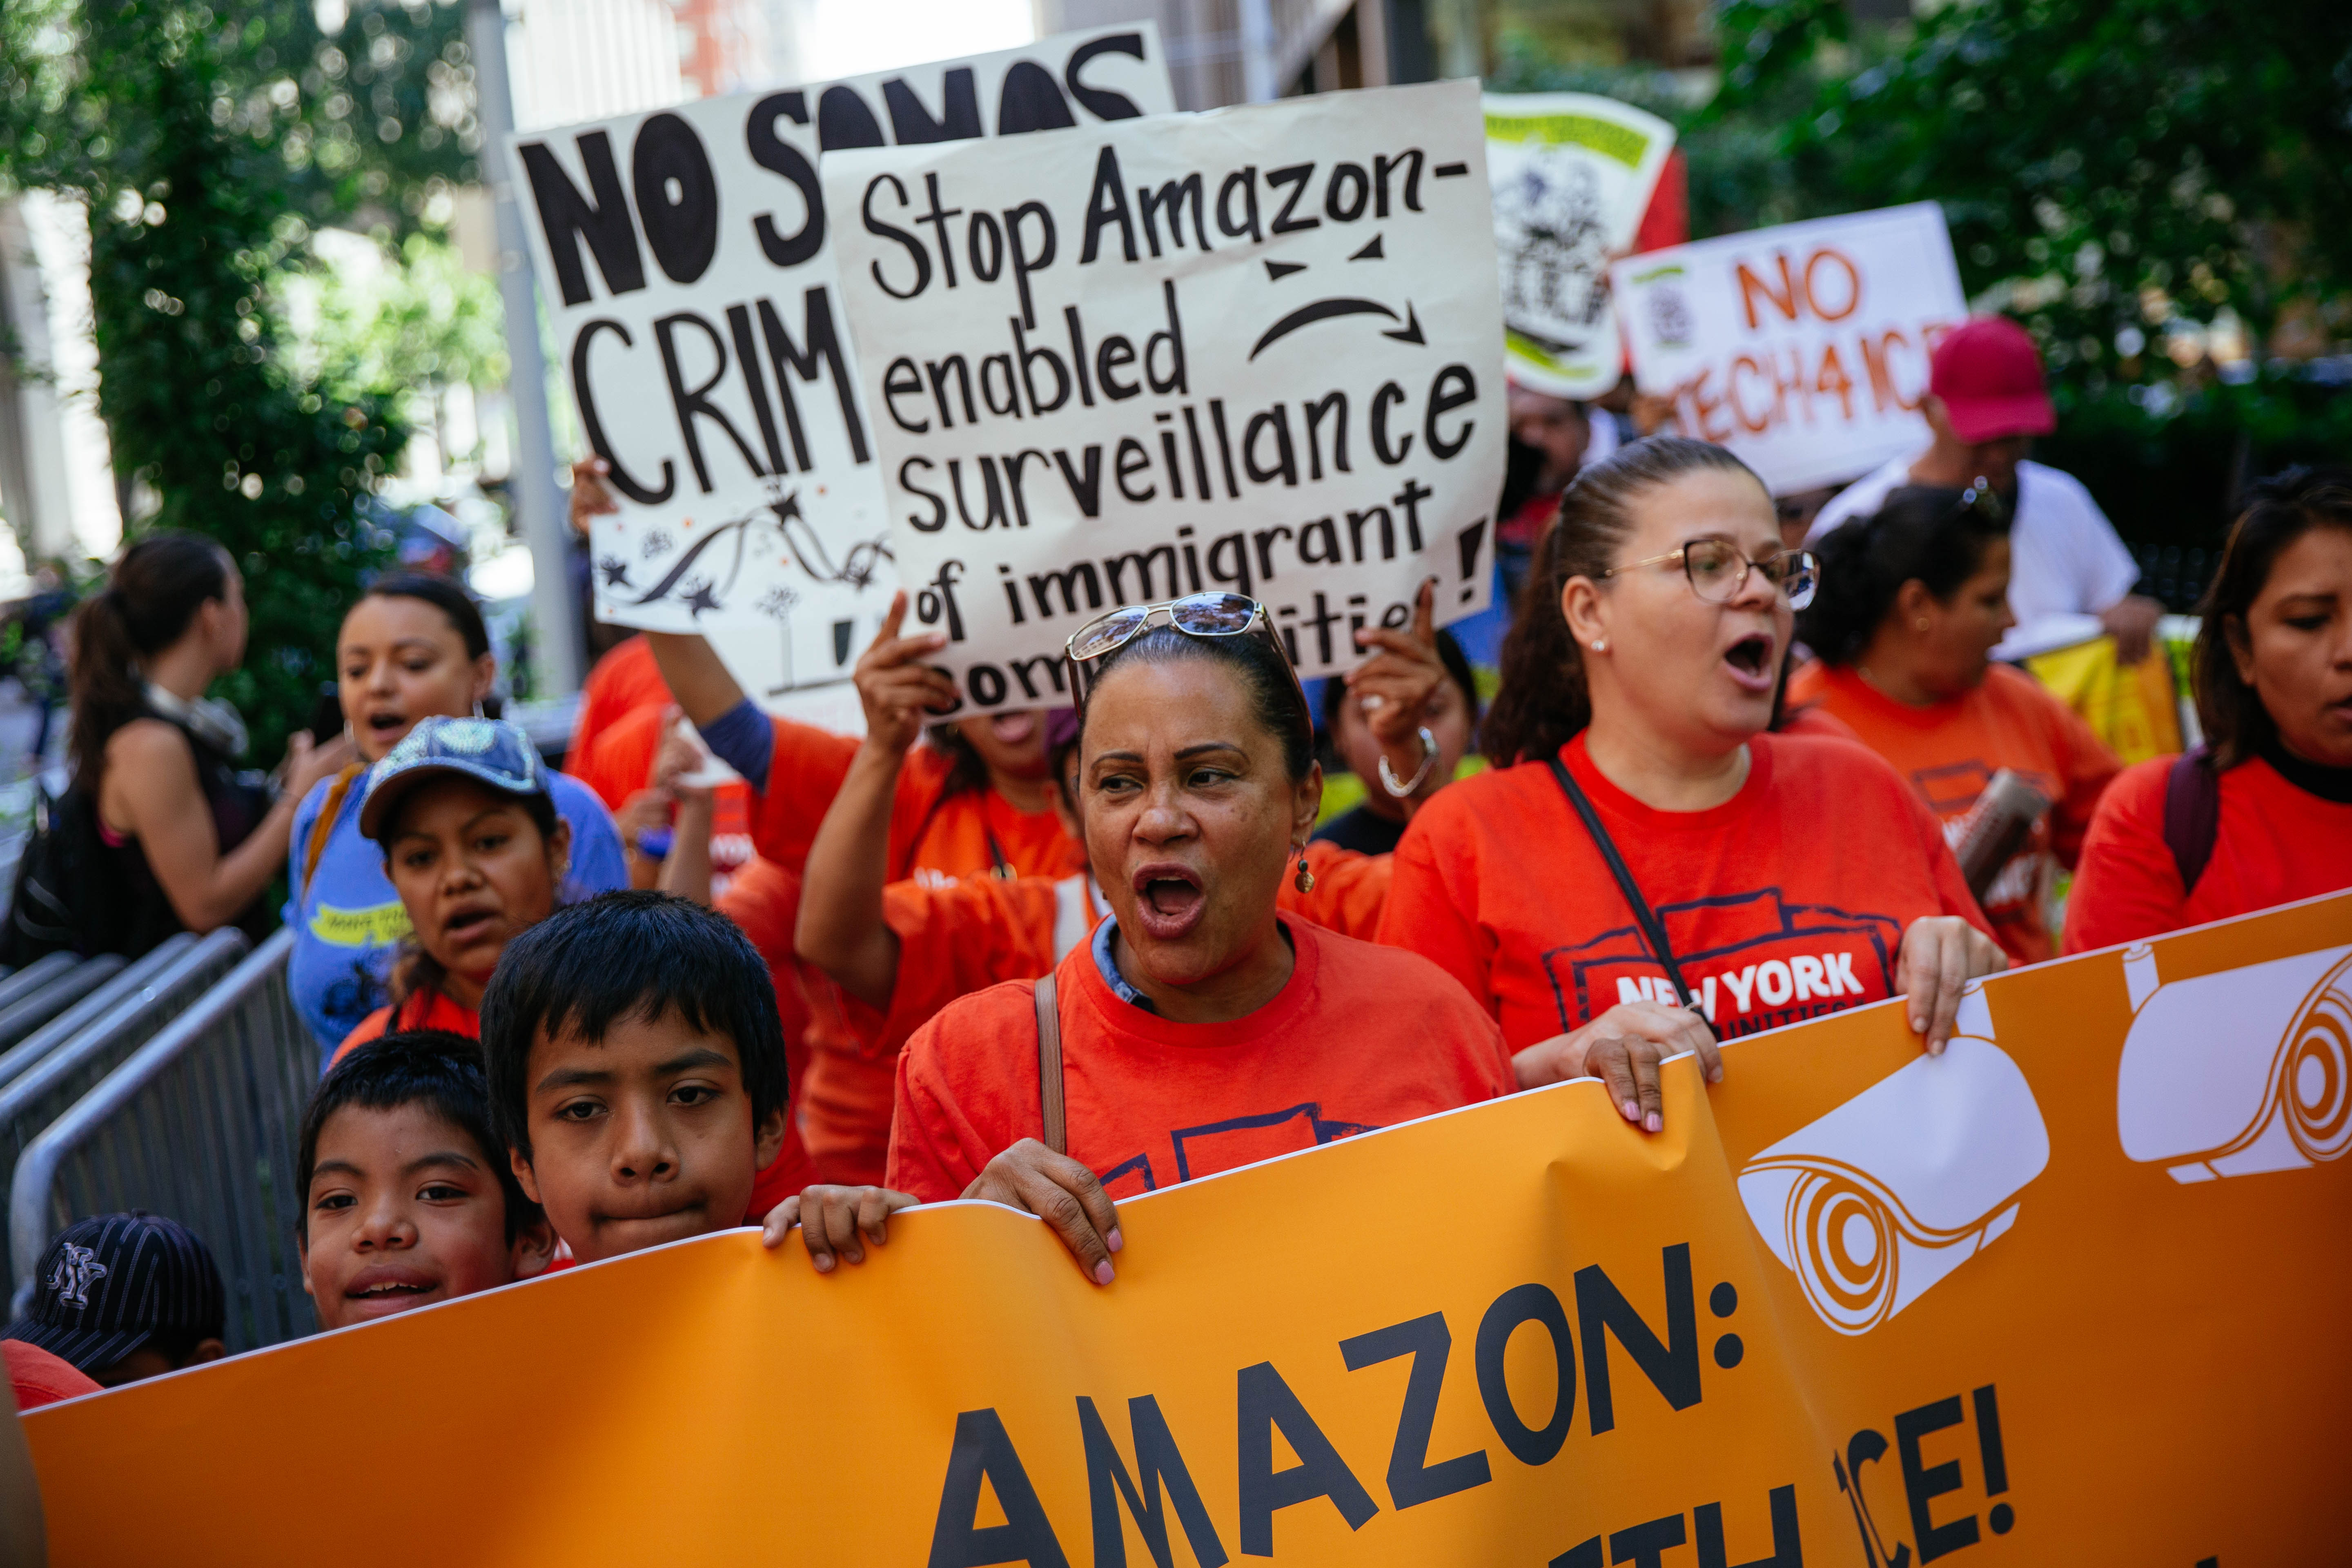 Here's why some activists and shoppers are calling for Amazon Prime Day boycotts